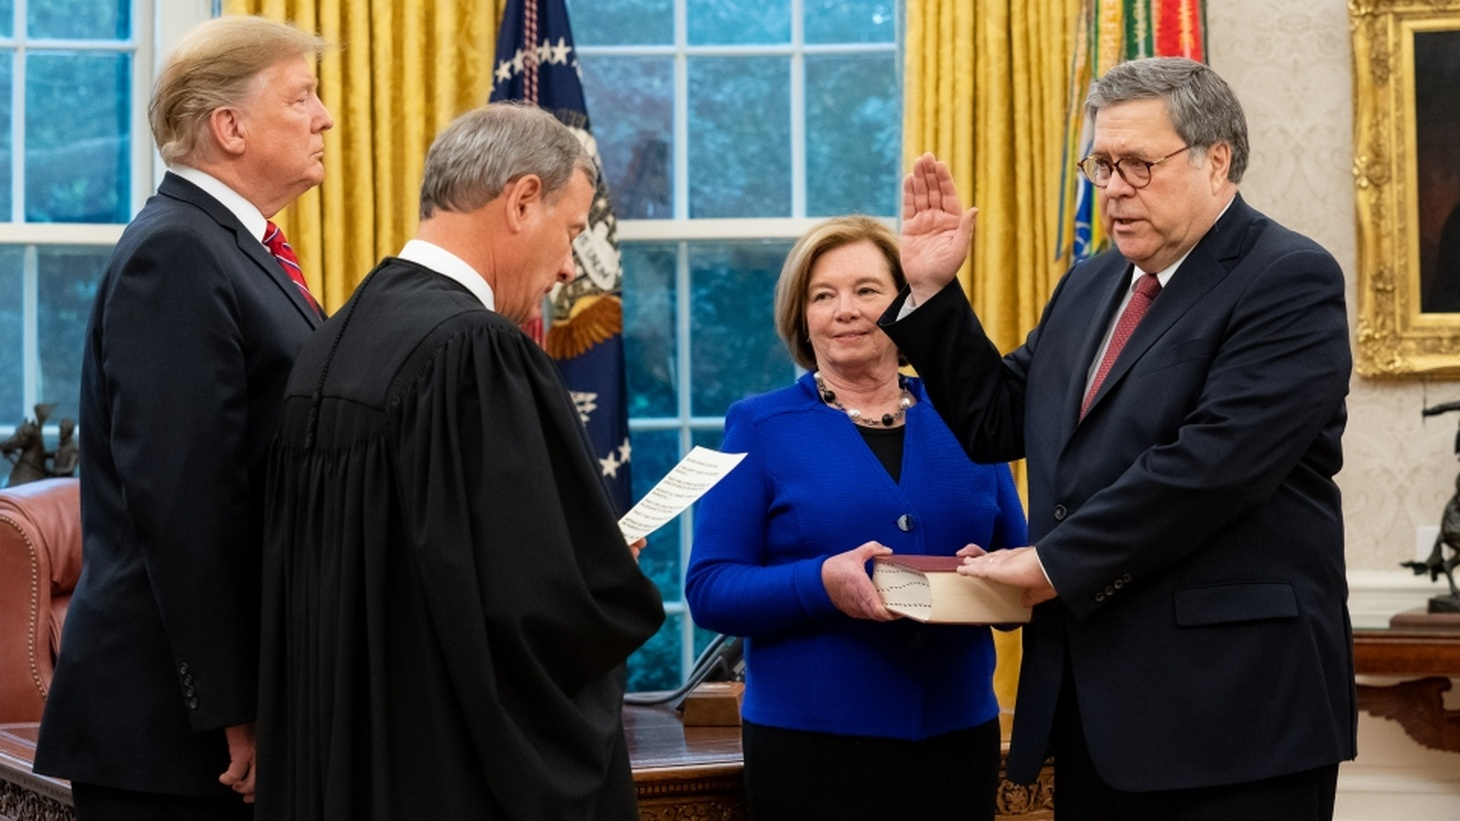 William P. Barr is sworn in as the 85th Attorney General of the United States, February 14, 2019.